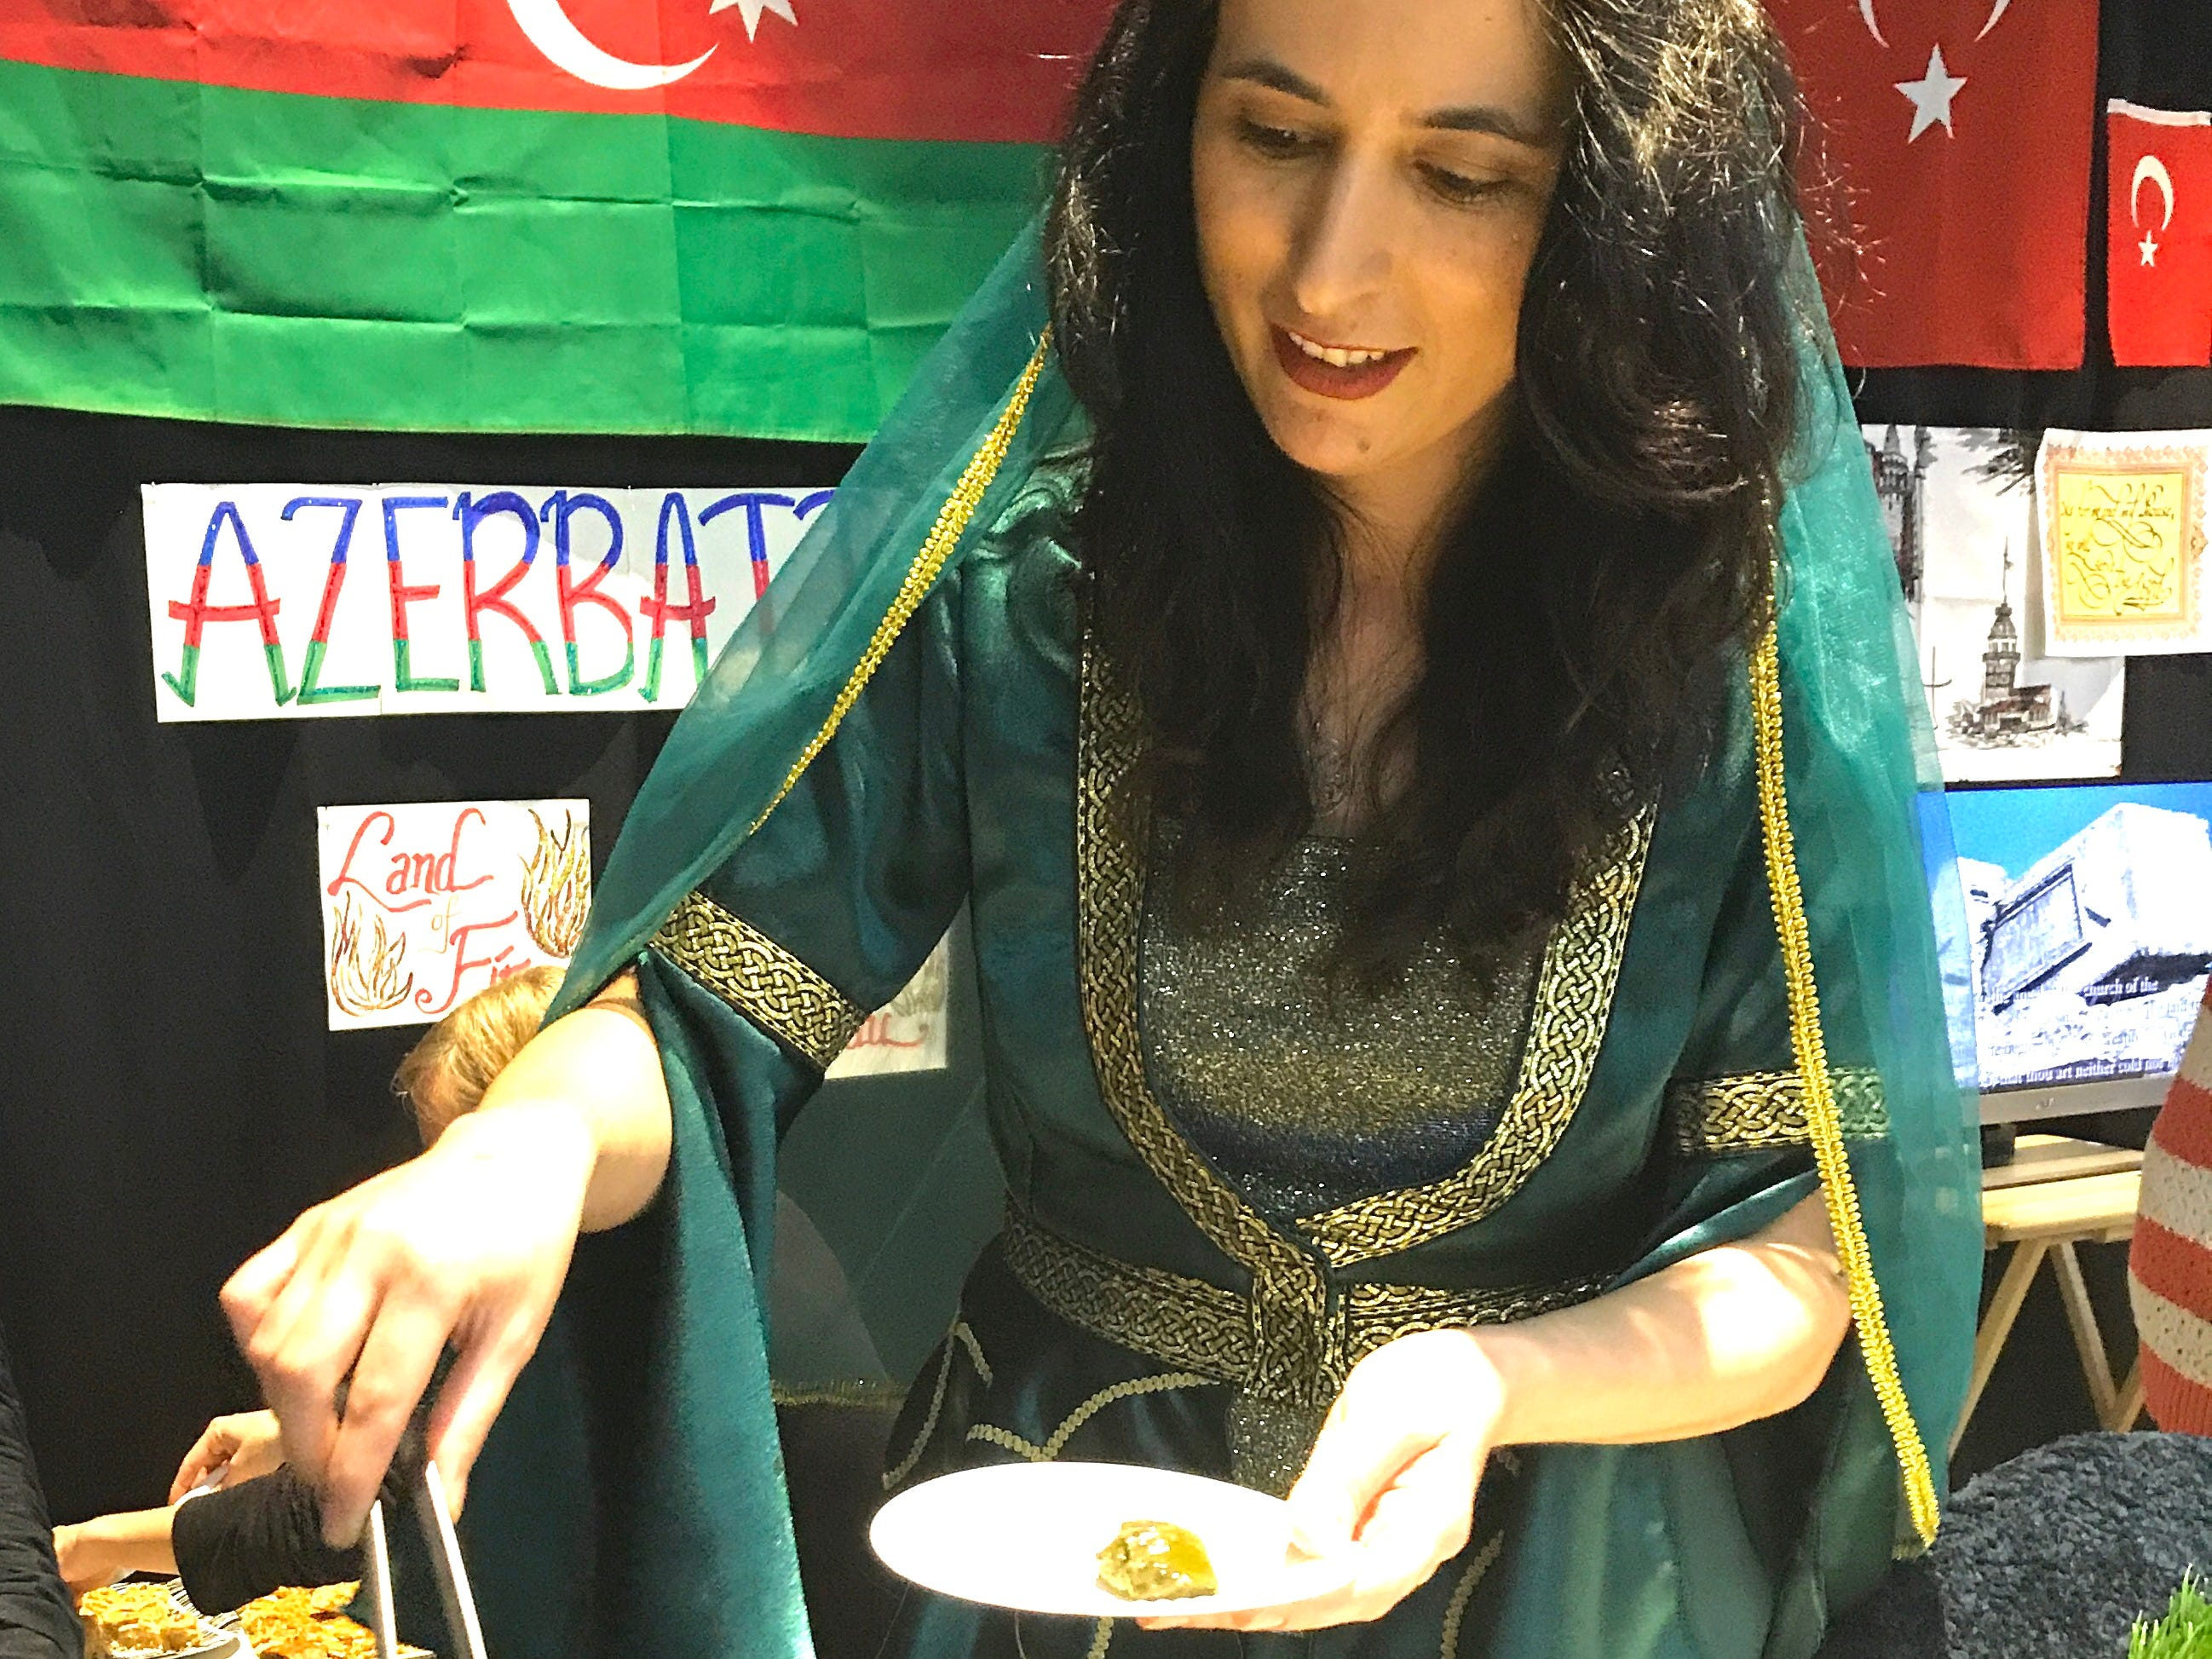 Sevda Turajova of Azerbaijan serves a native dish of dolma made with grape leaves during the Festival of Cultures hosted by Bethel Church on Feb. 9, 2019, in the Redding Civic Auditorium.